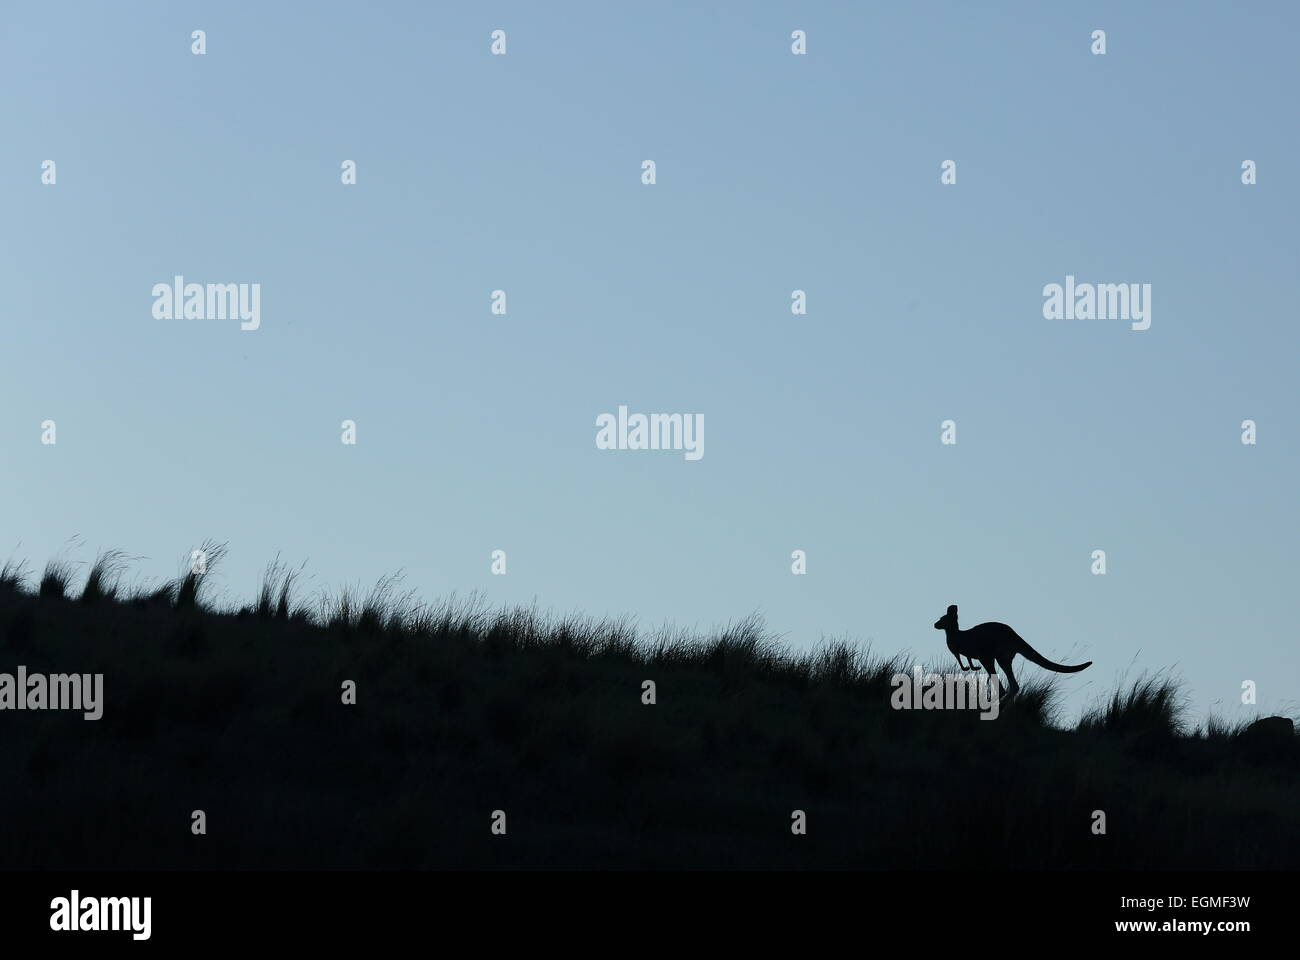 Kangaroo hopping in Australia - Stock Image